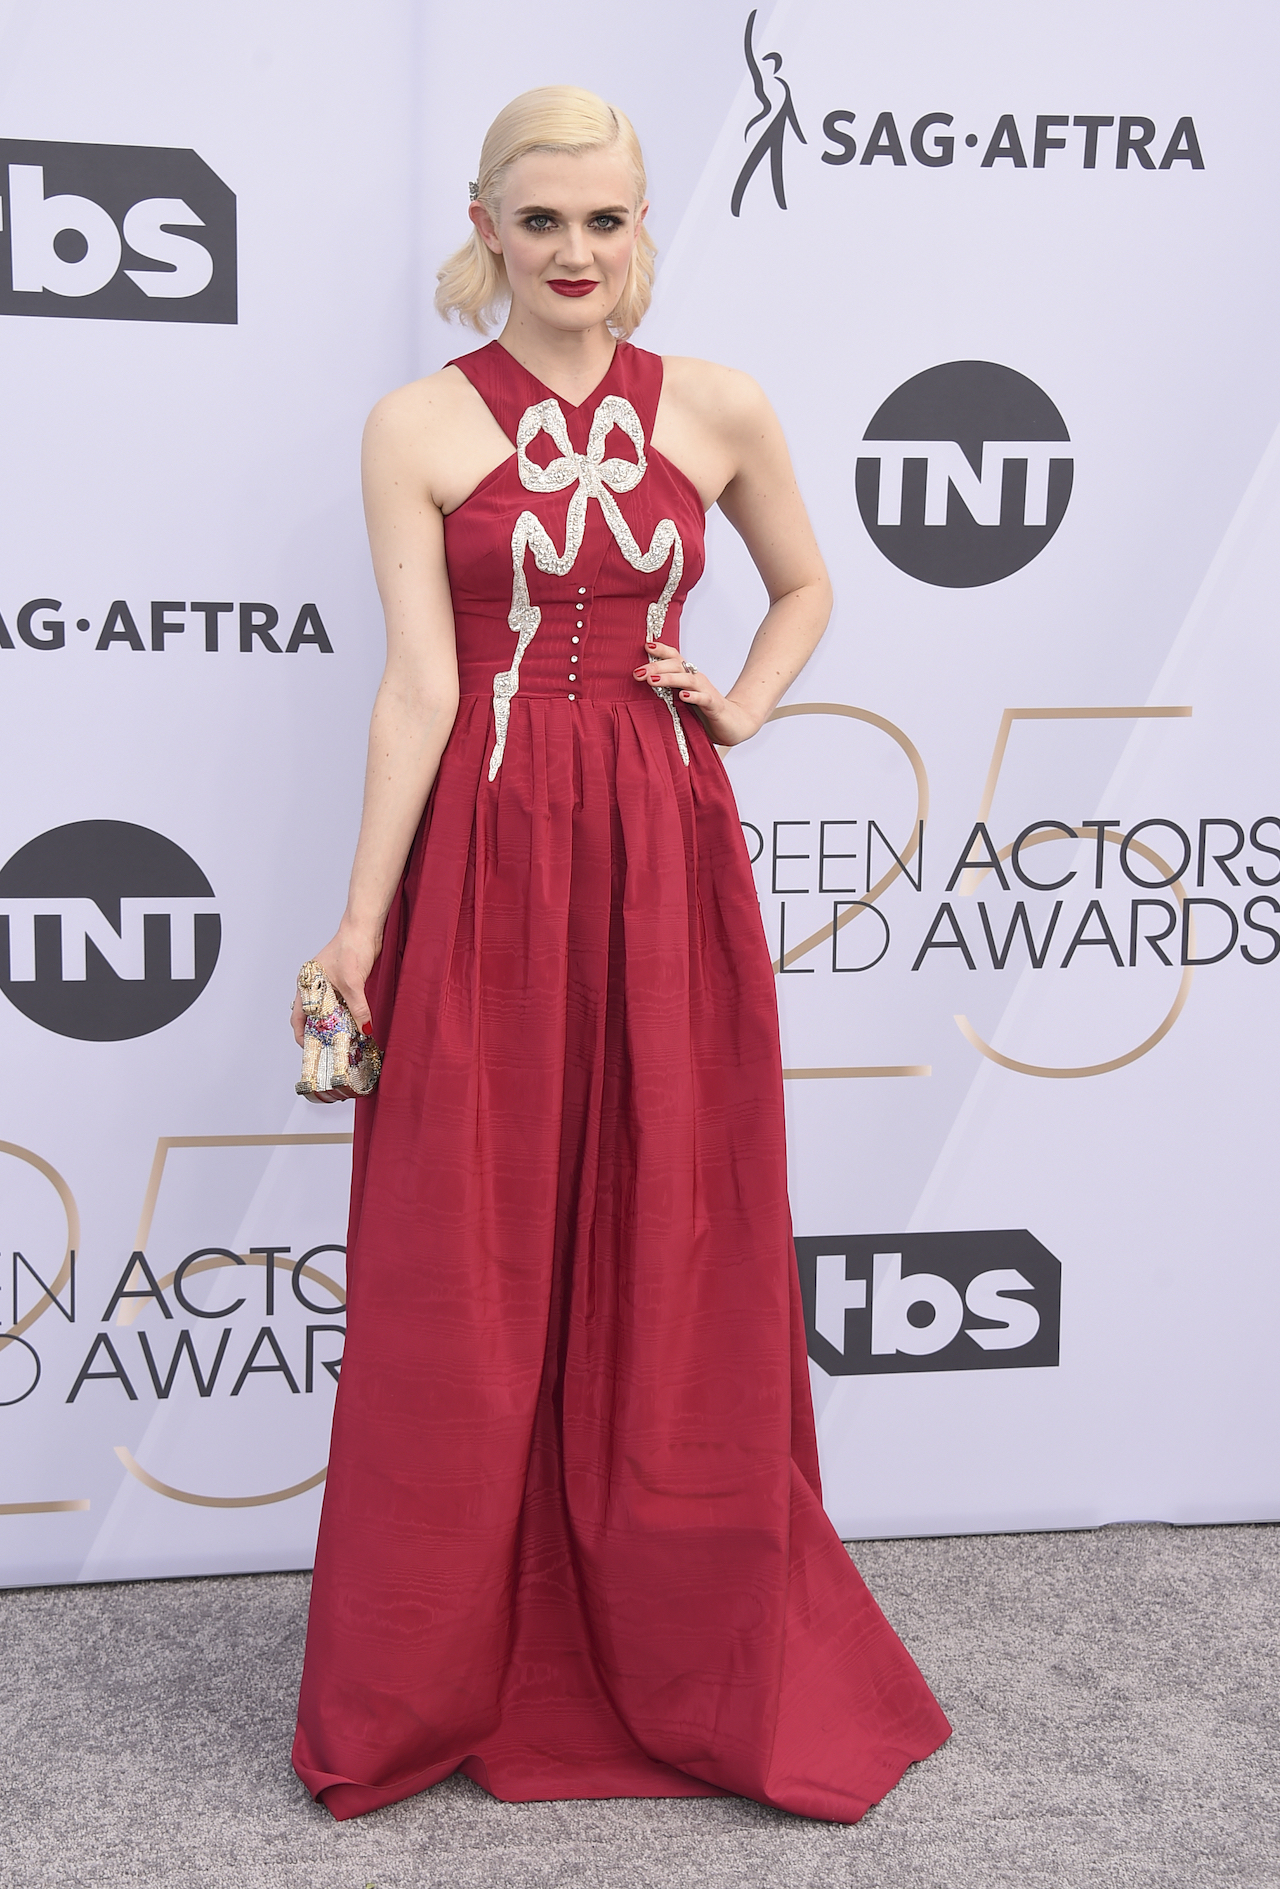 <div class='meta'><div class='origin-logo' data-origin='AP'></div><span class='caption-text' data-credit='Jordan Strauss/Invision/AP'>Gayle Rankin arrives at the 25th annual Screen Actors Guild Awards at the Shrine Auditorium & Expo Hall on Sunday, Jan. 27, 2019, in Los Angeles.</span></div>